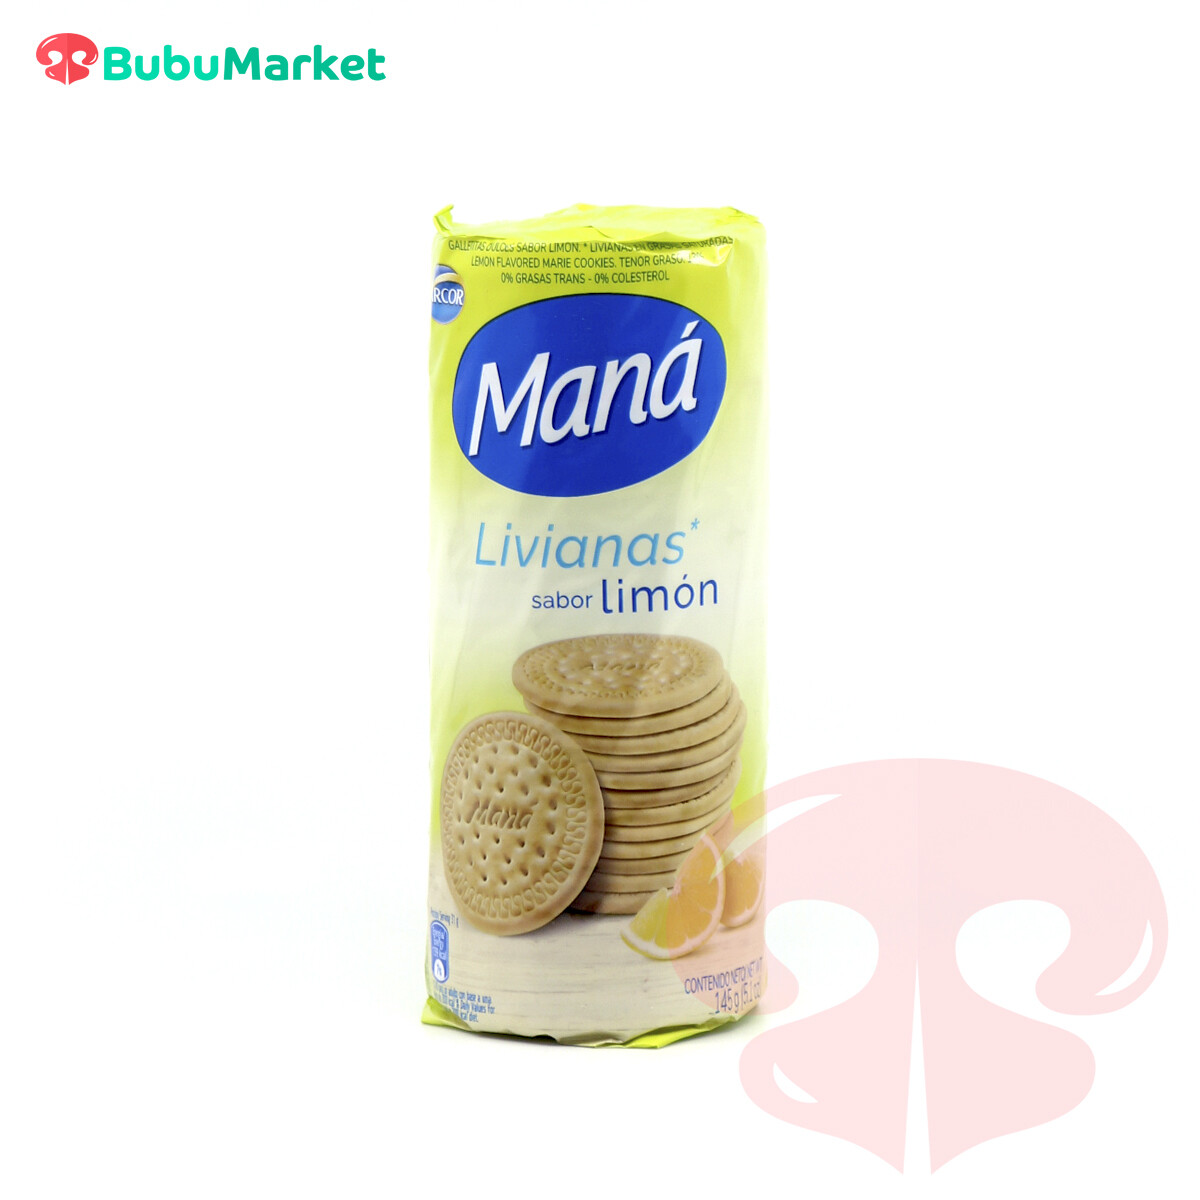 GALLETAS ARCOR MANA LIVIANAS SABOR LIMON 145 GR.